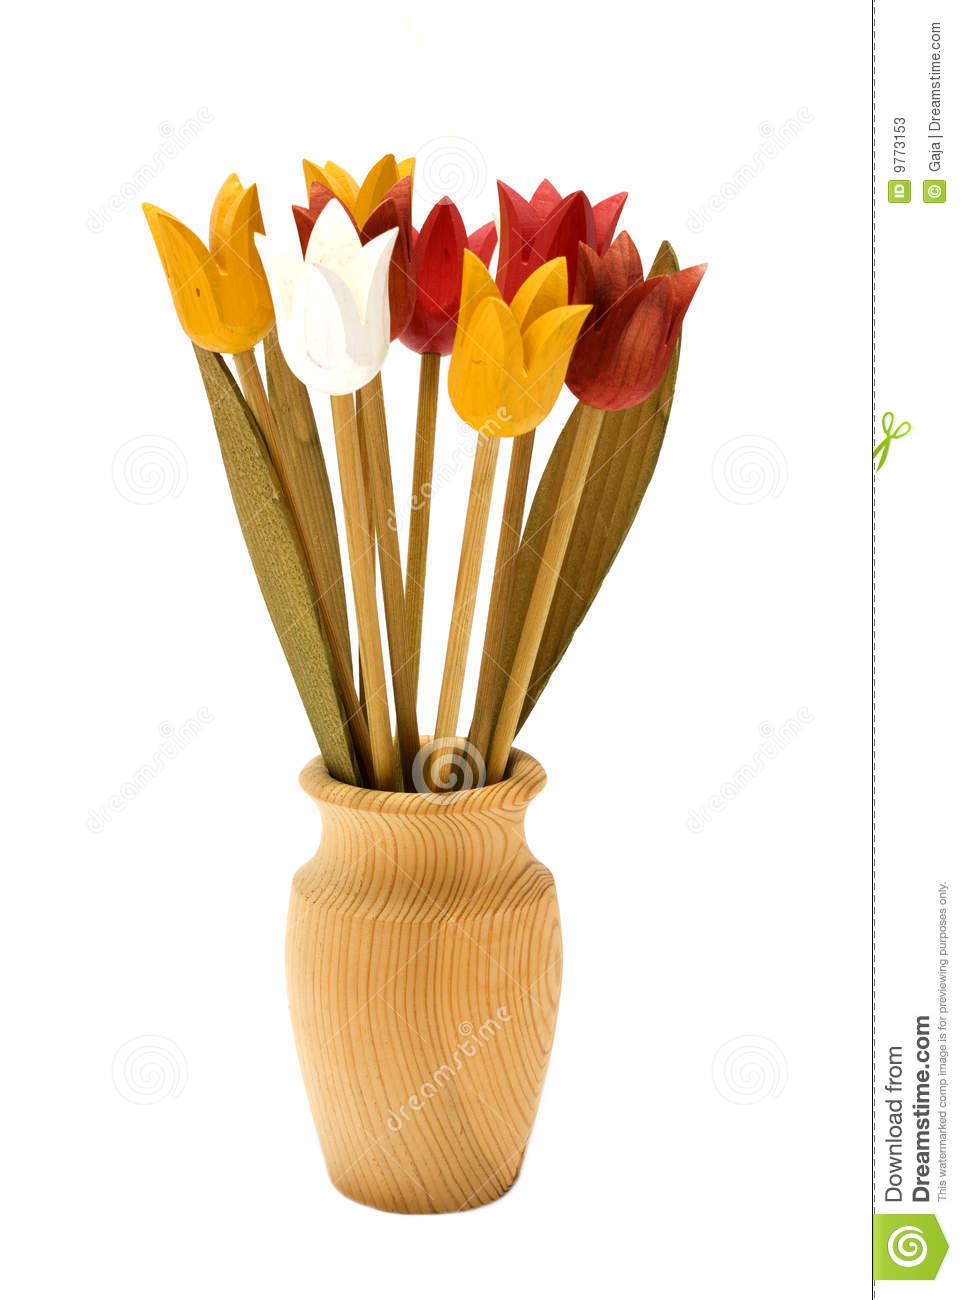 Wood Flowers In A Wooden Vase Stock Image Image Of Ornament Carved 9773153